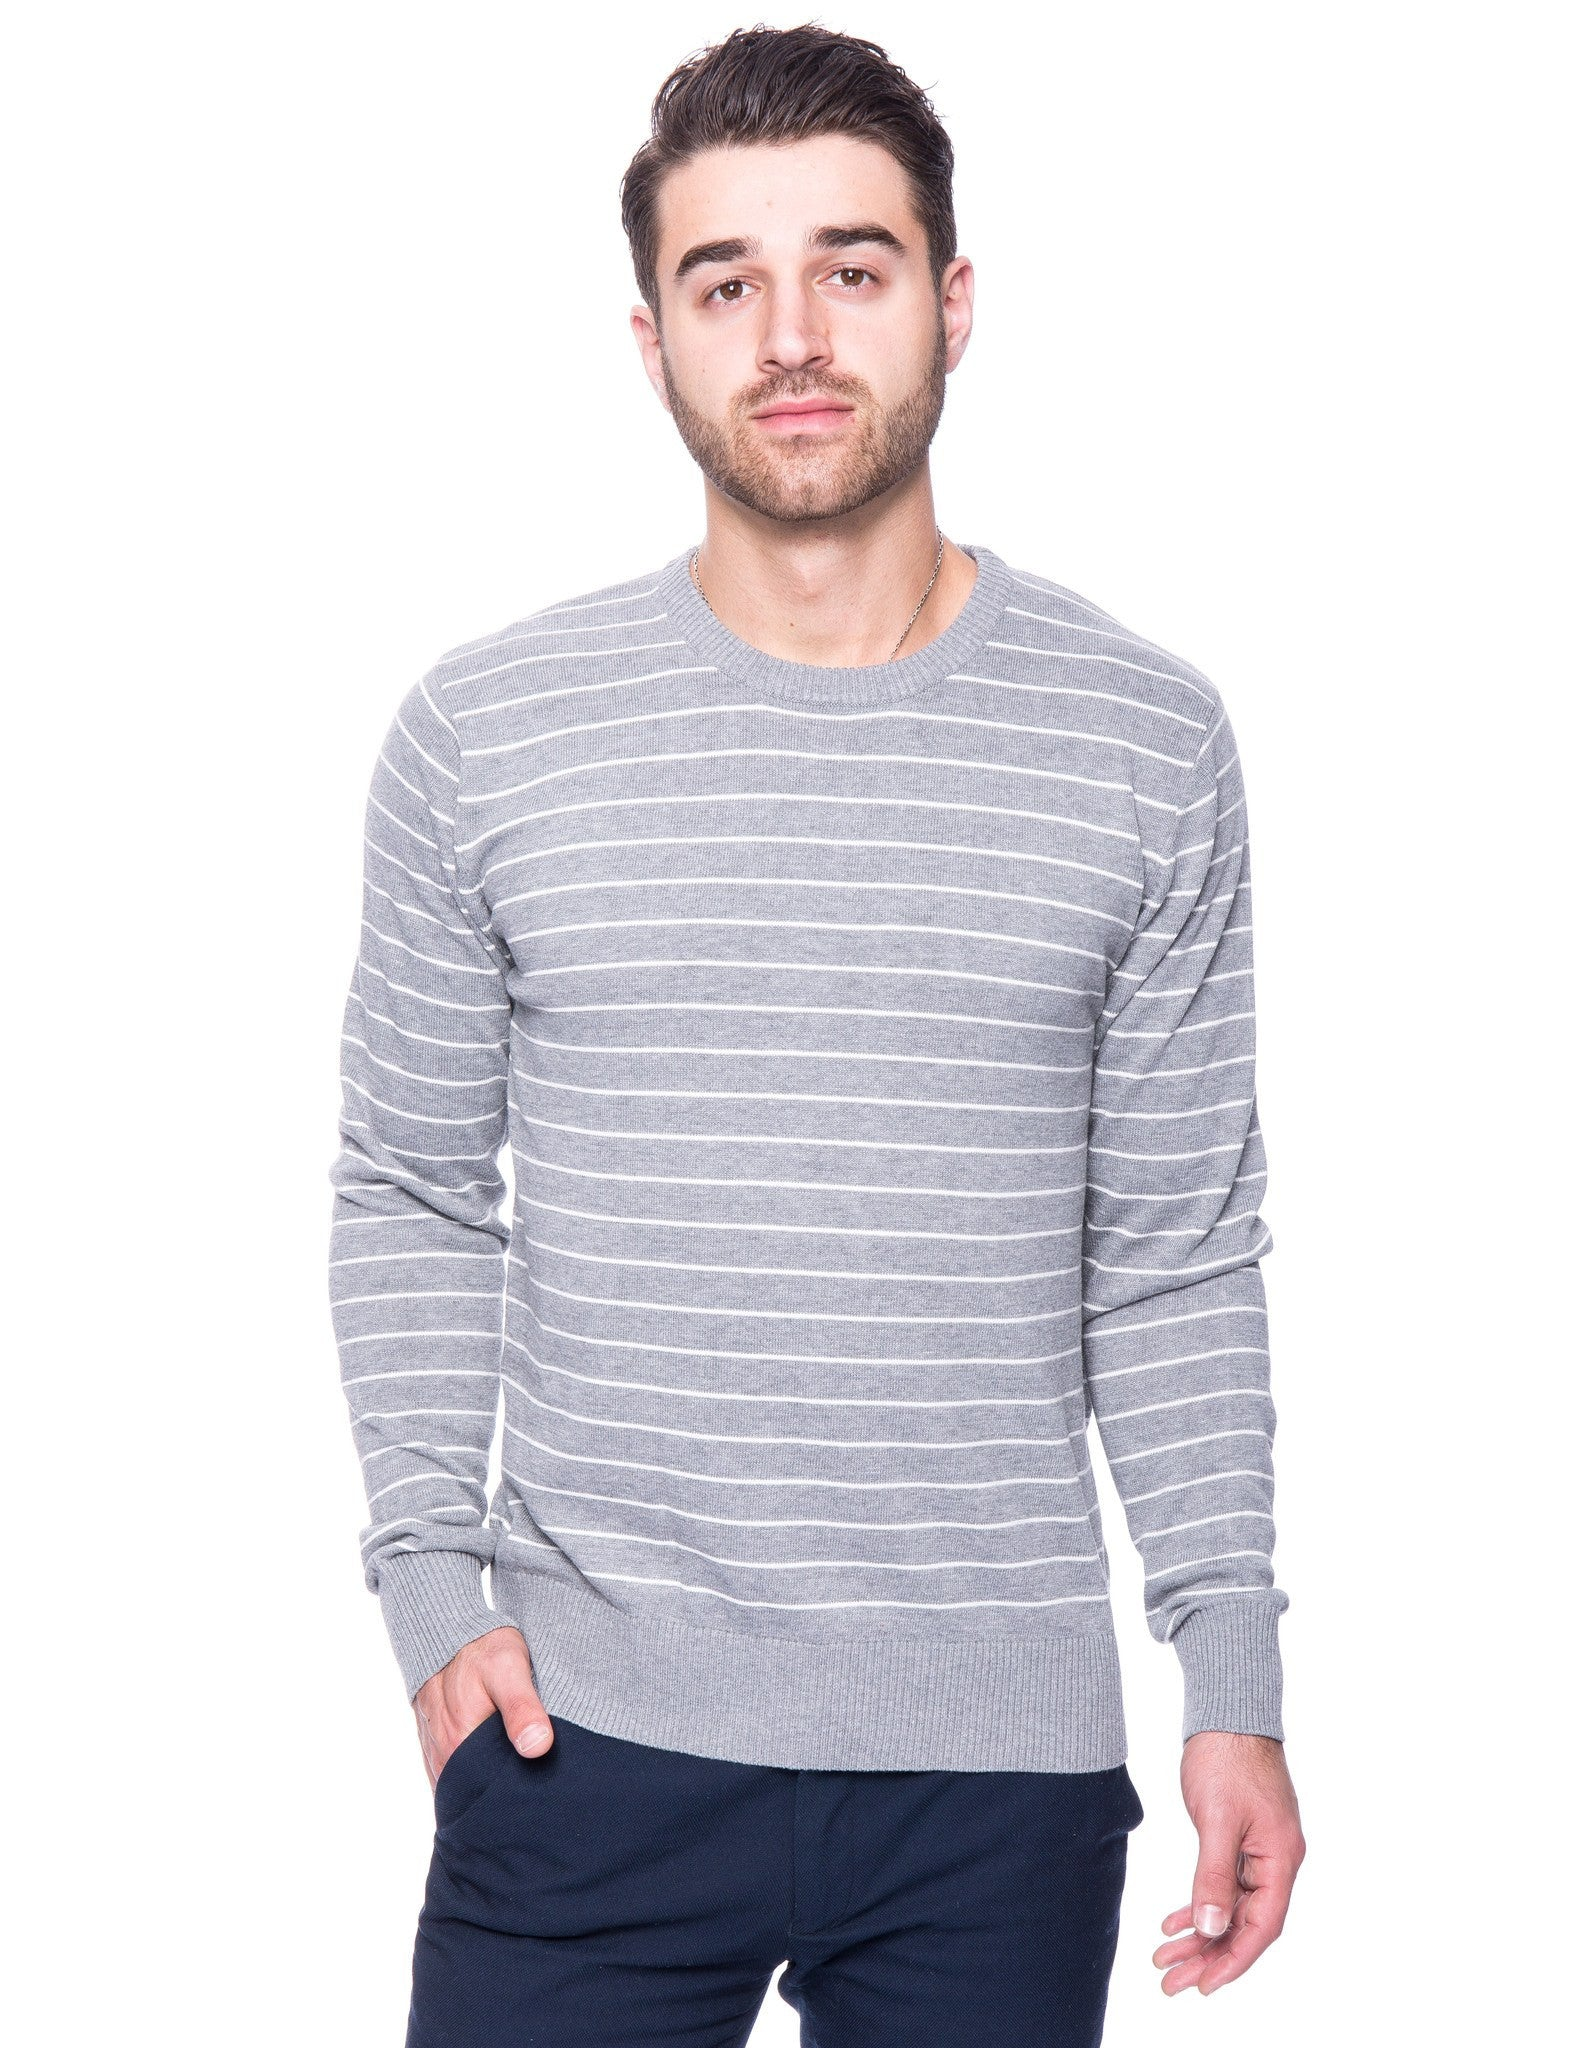 bda38b13f Tocco Reale Men's Cotton Crew Neck Sweater - Stripes Heather Grey/Ivory